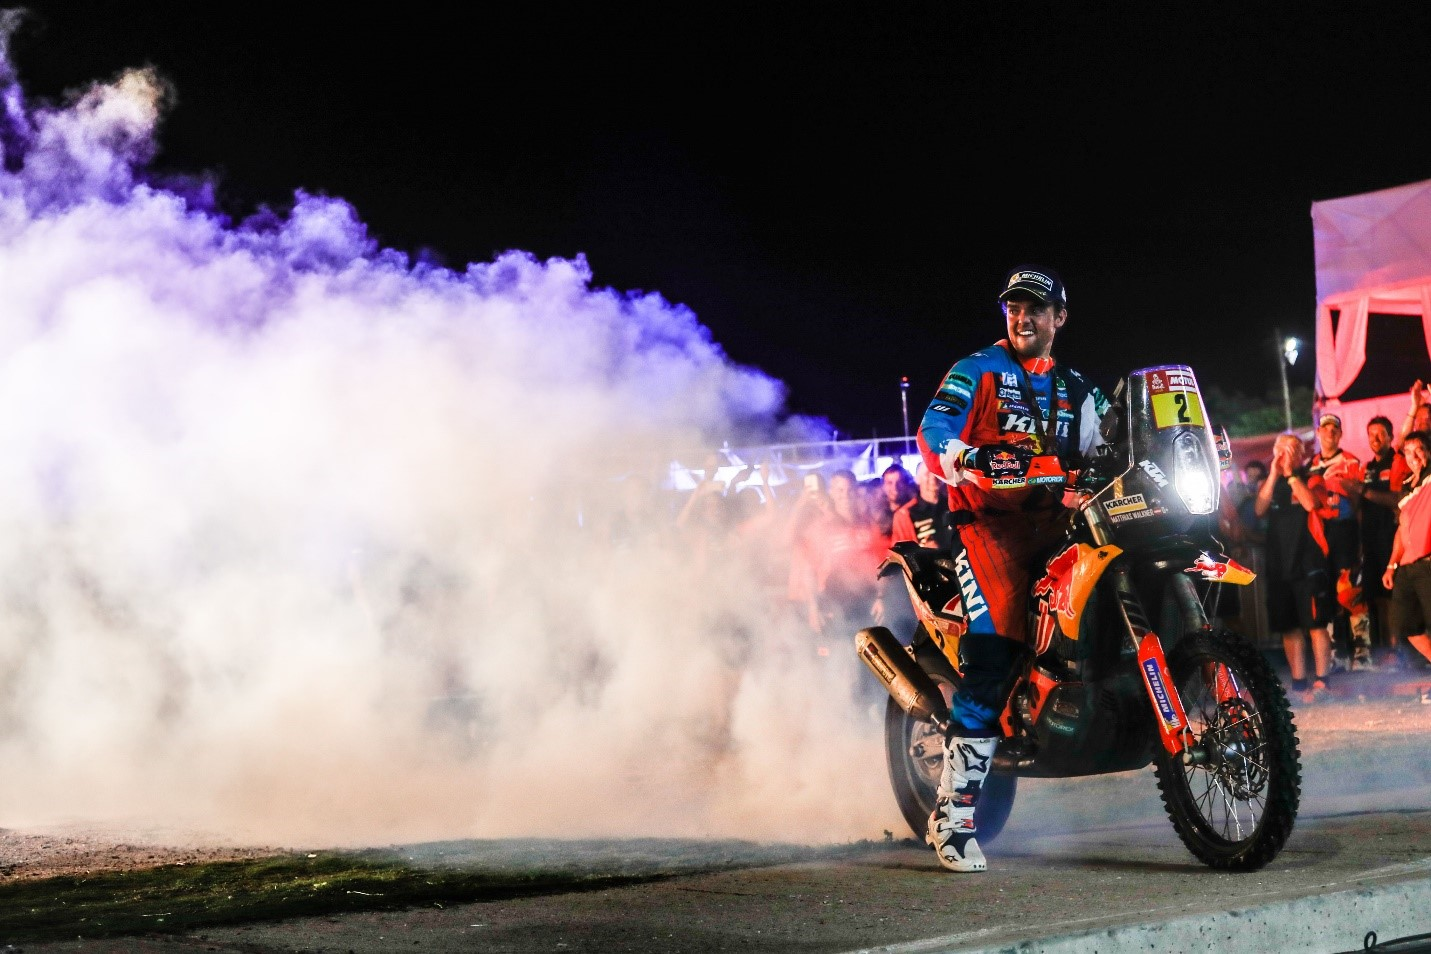 2018 Dakar Rally: KTM Battles Honda for Supremacy in the World's Toughest Motorcycle Race